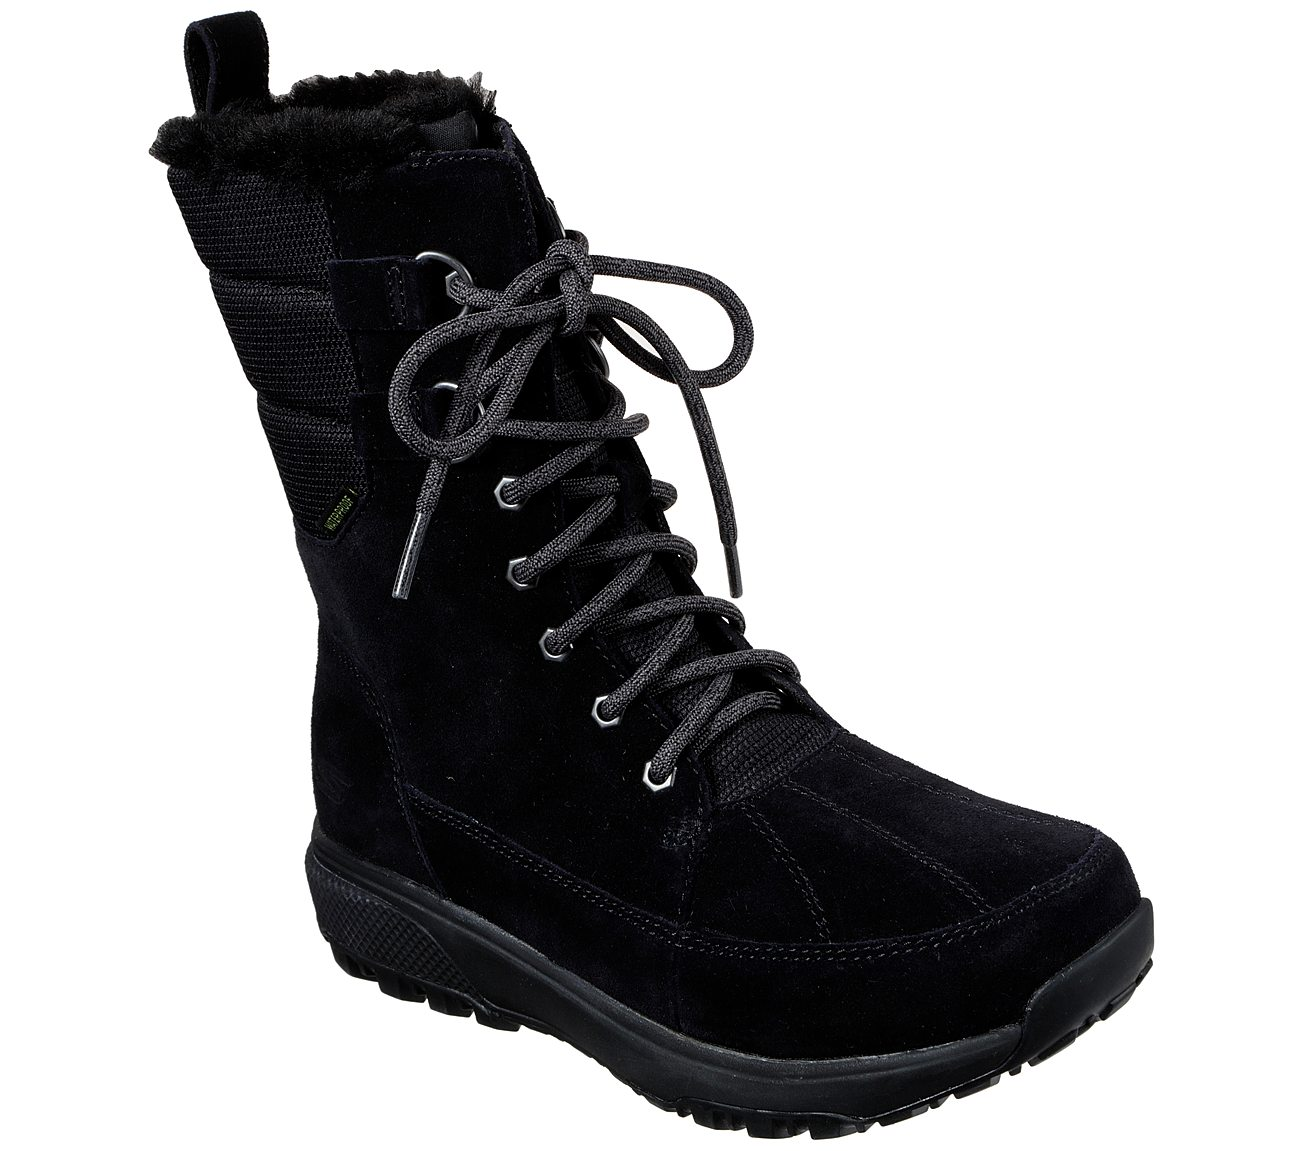 Women's Skechers GO Outdoors Ultra Waterproof Hiking Boot